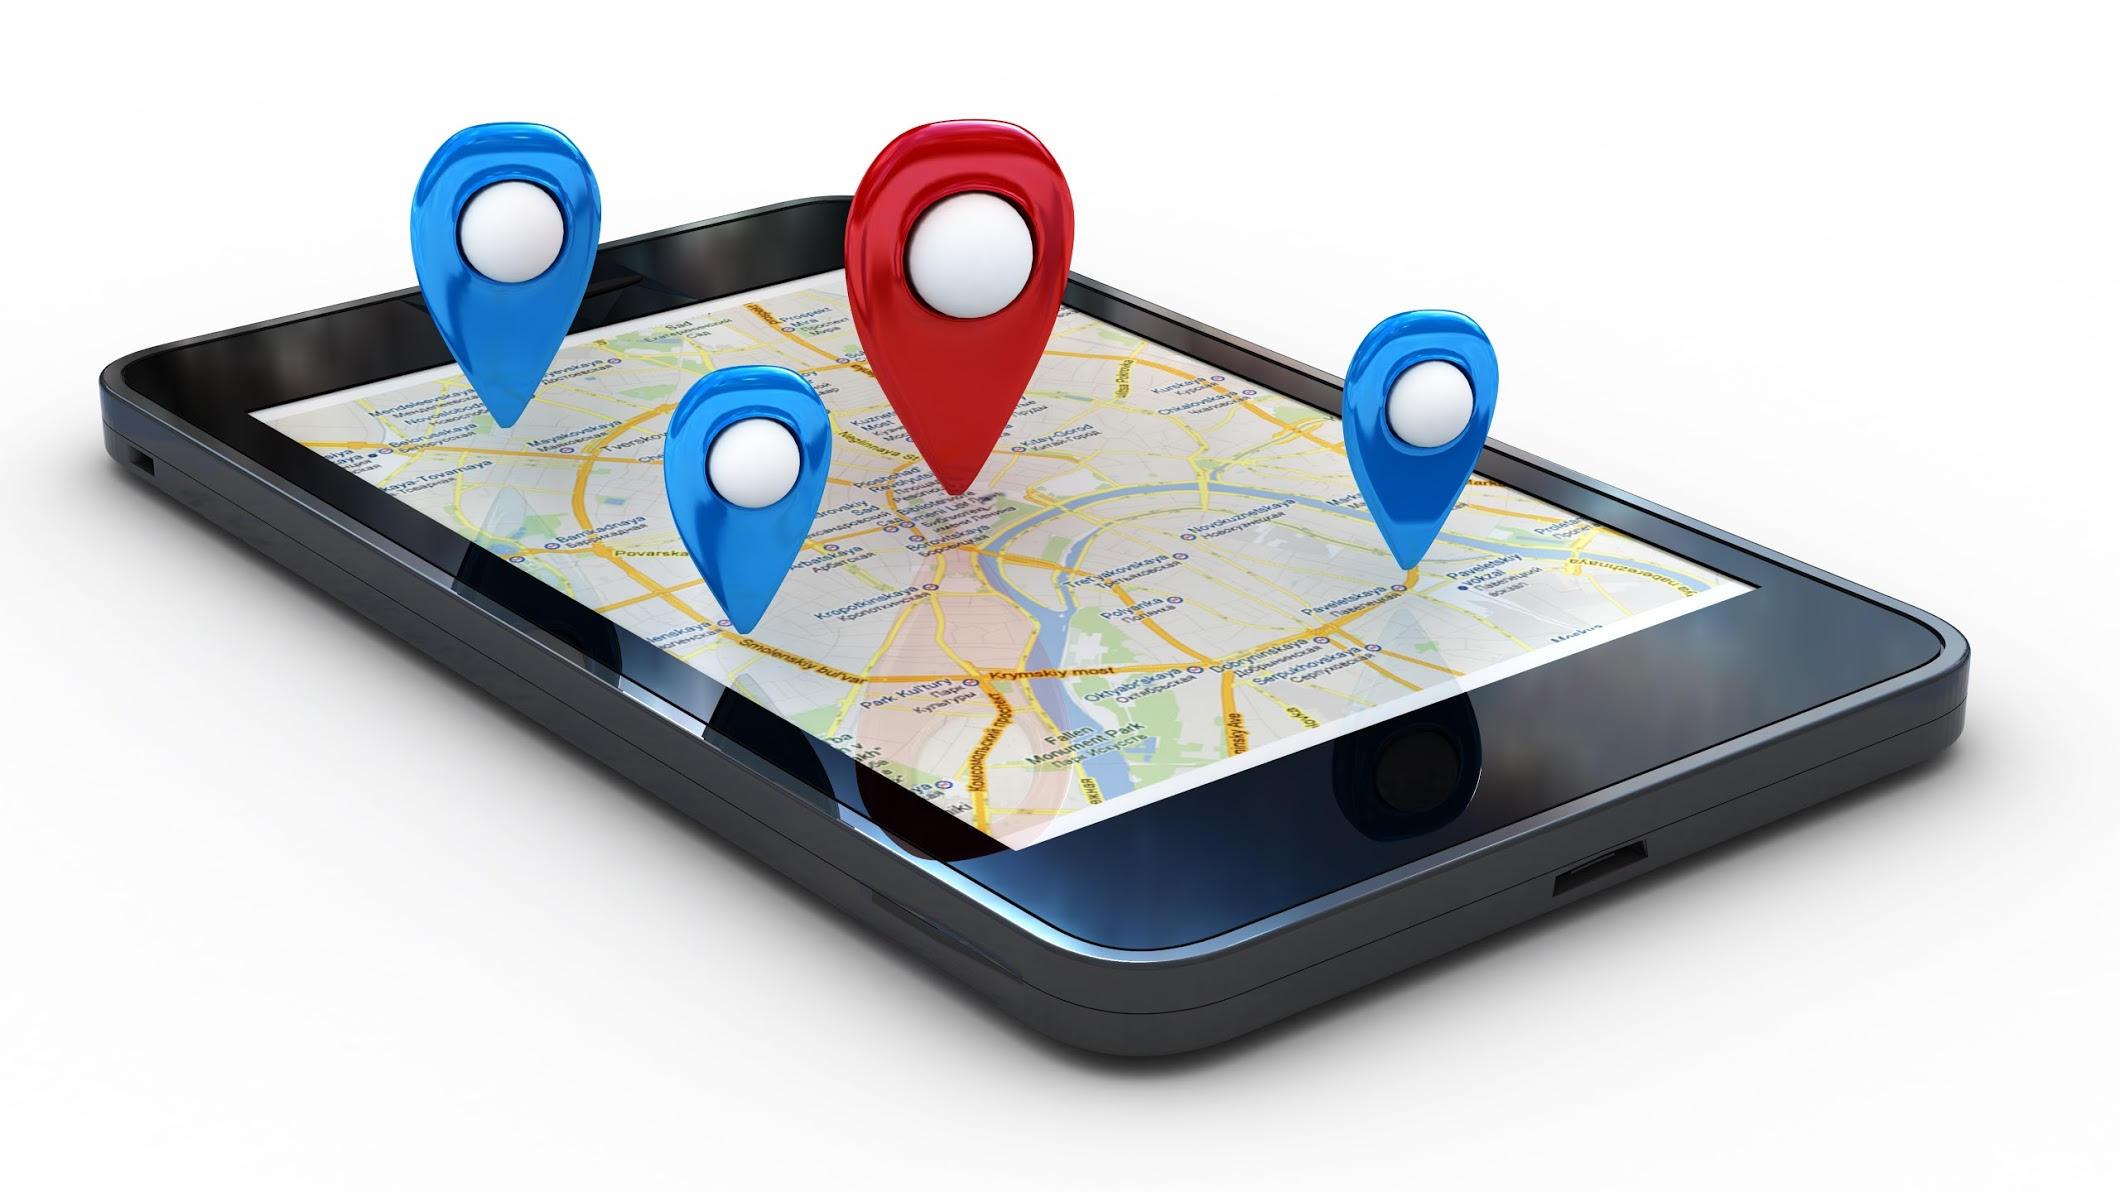 how to track a phone without them knowing